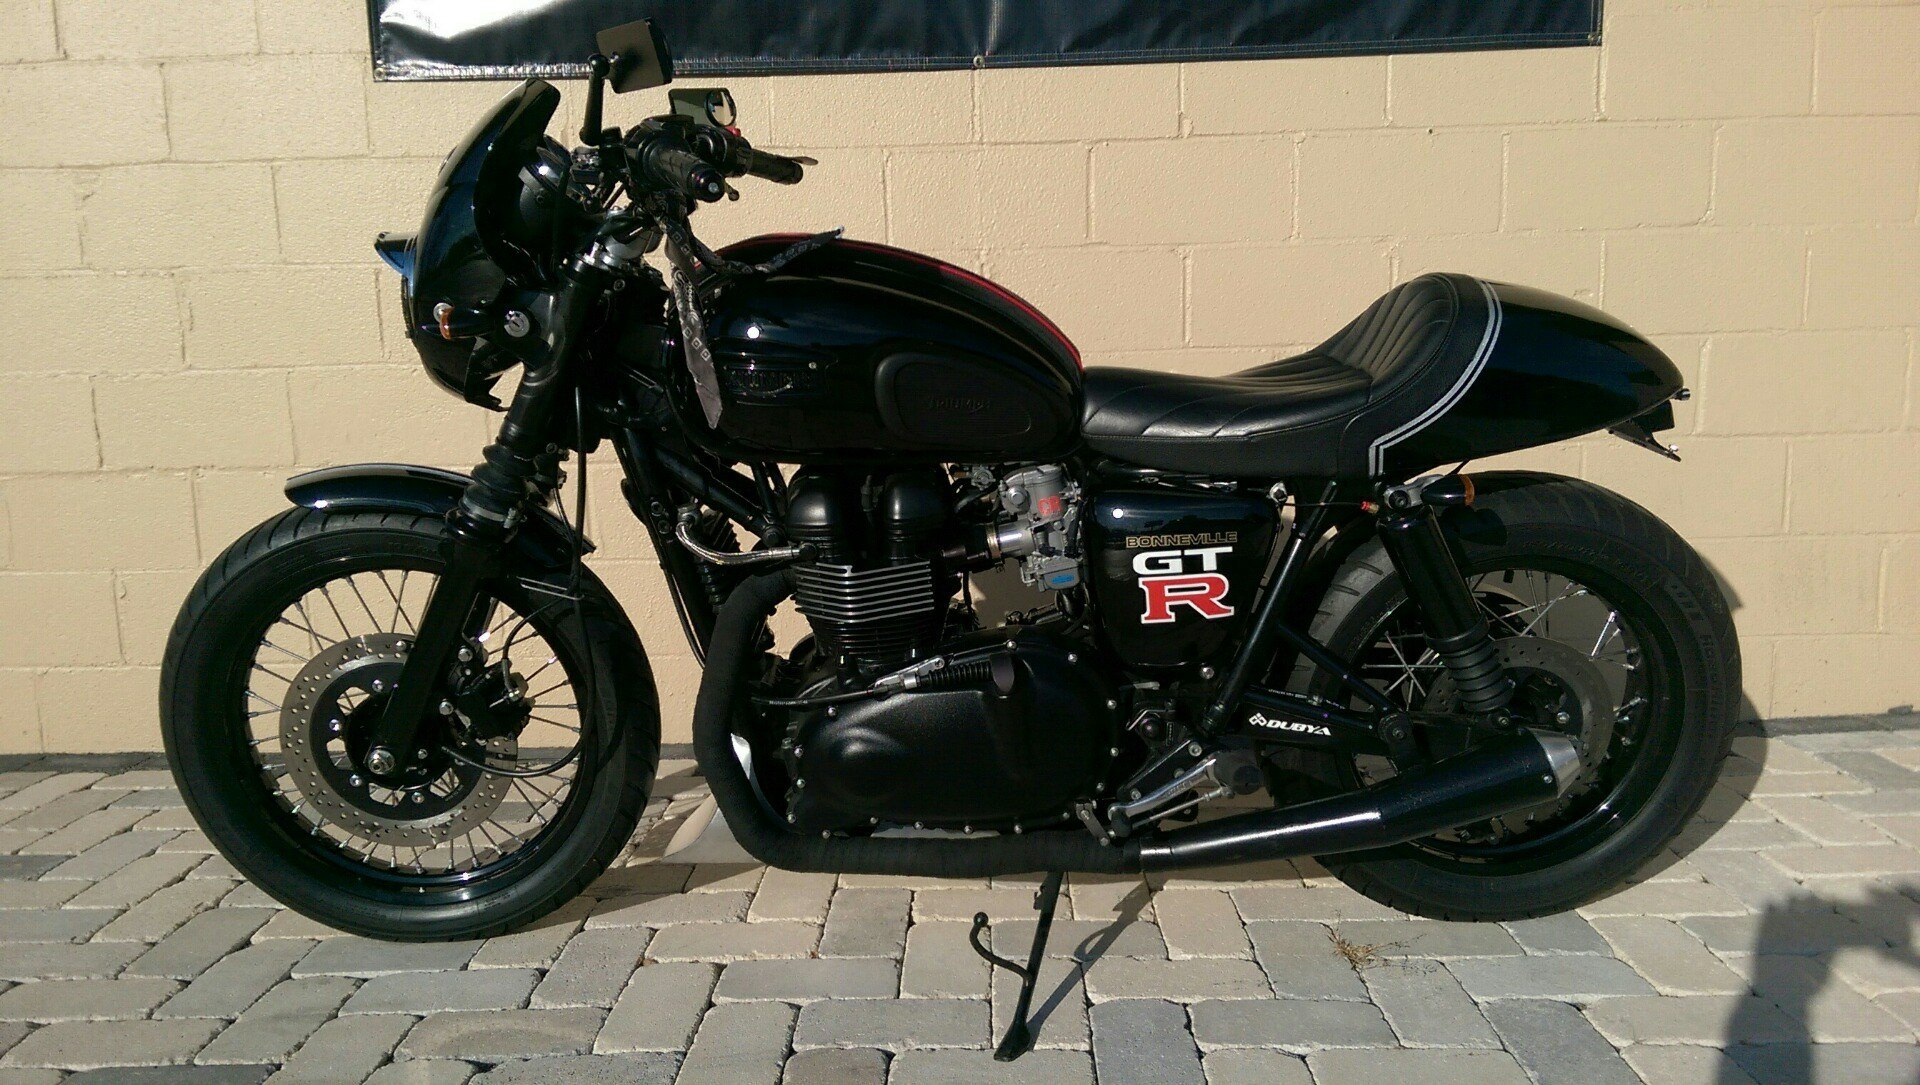 used 2004 triumph bonneville motorcycles in shelby township mi